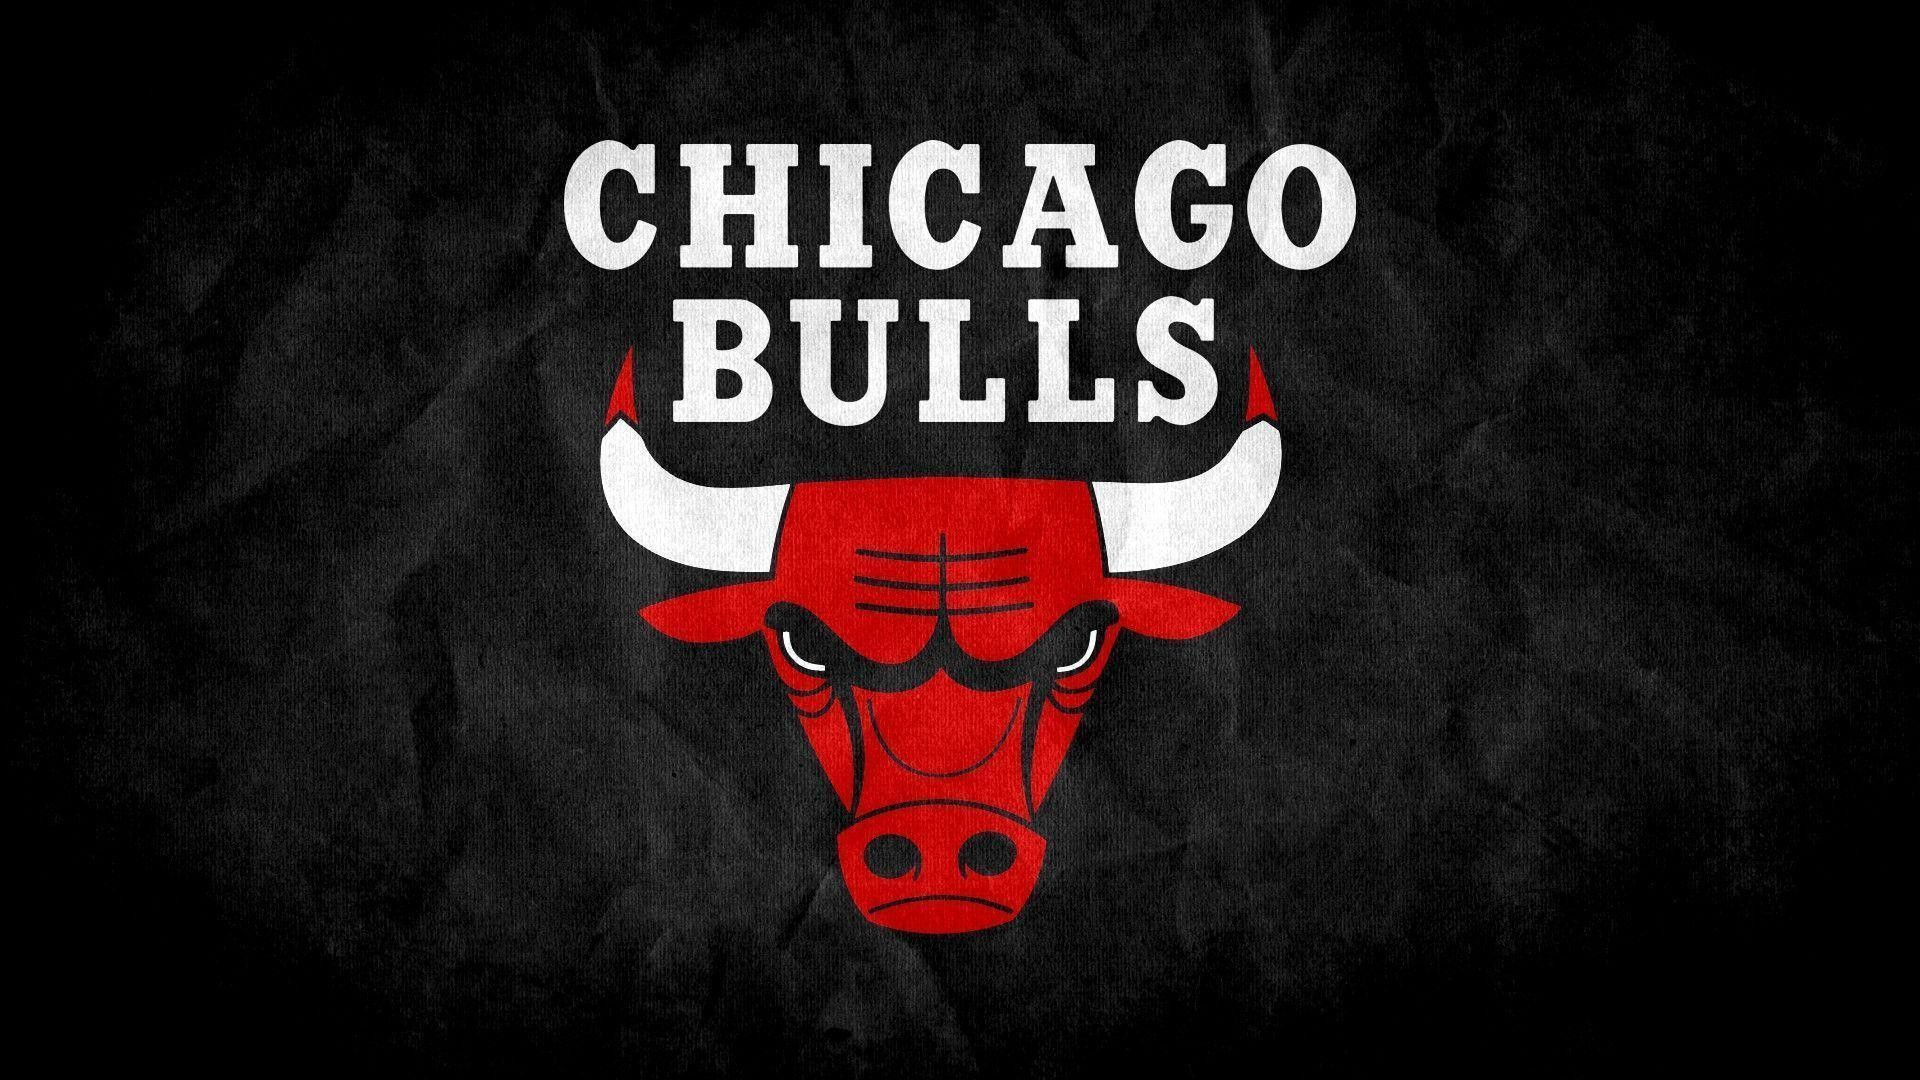 1920x1080 Chicago Bulls Wallpapers HD - Wallpaper Cave